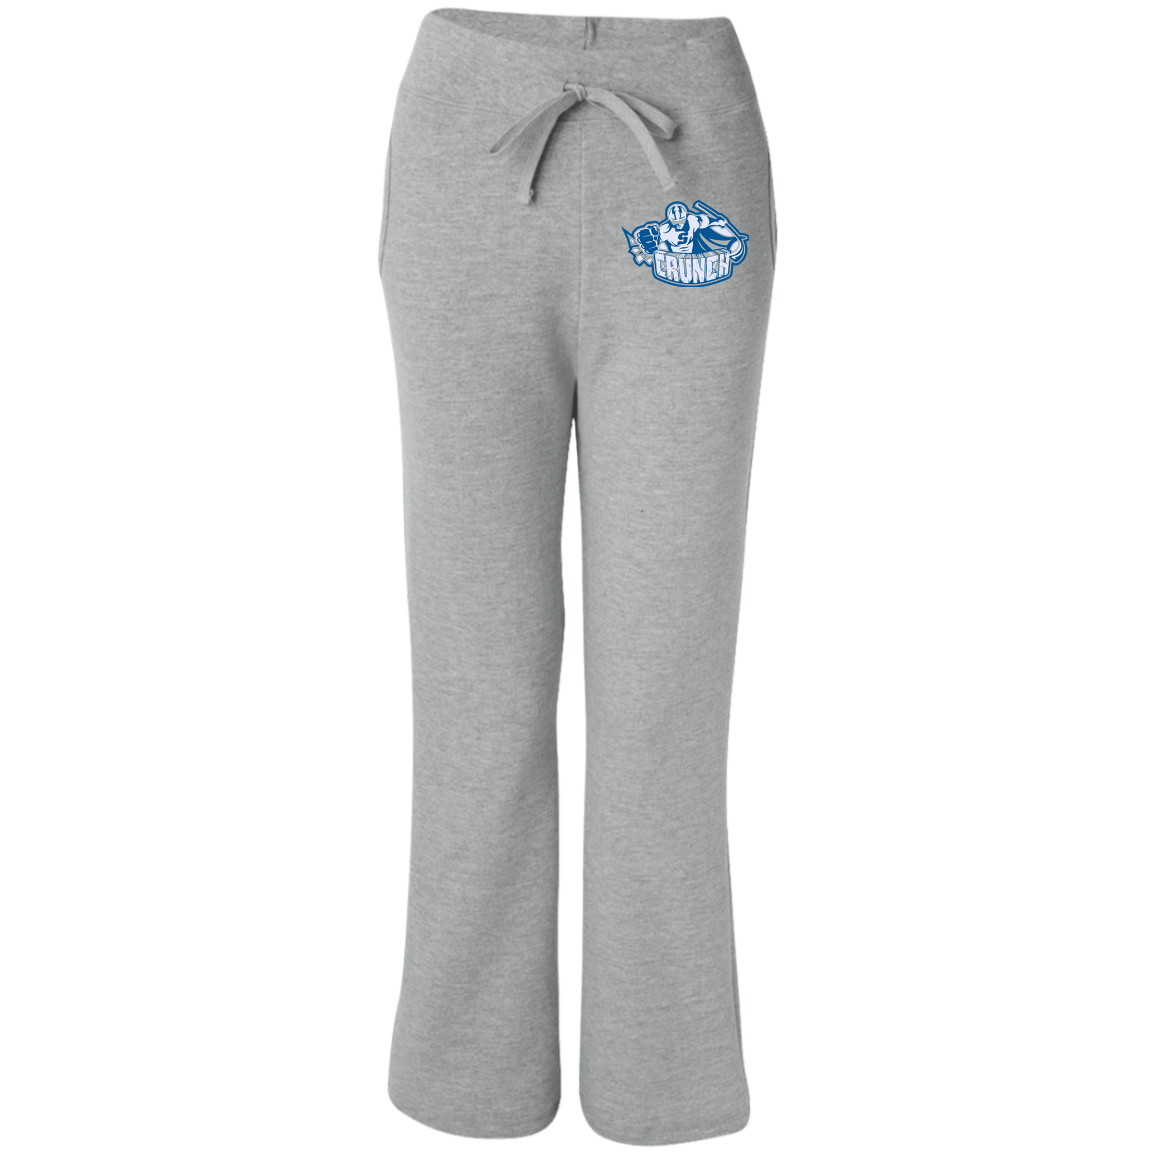 syracuse crunch womens open bottom sweatpants with